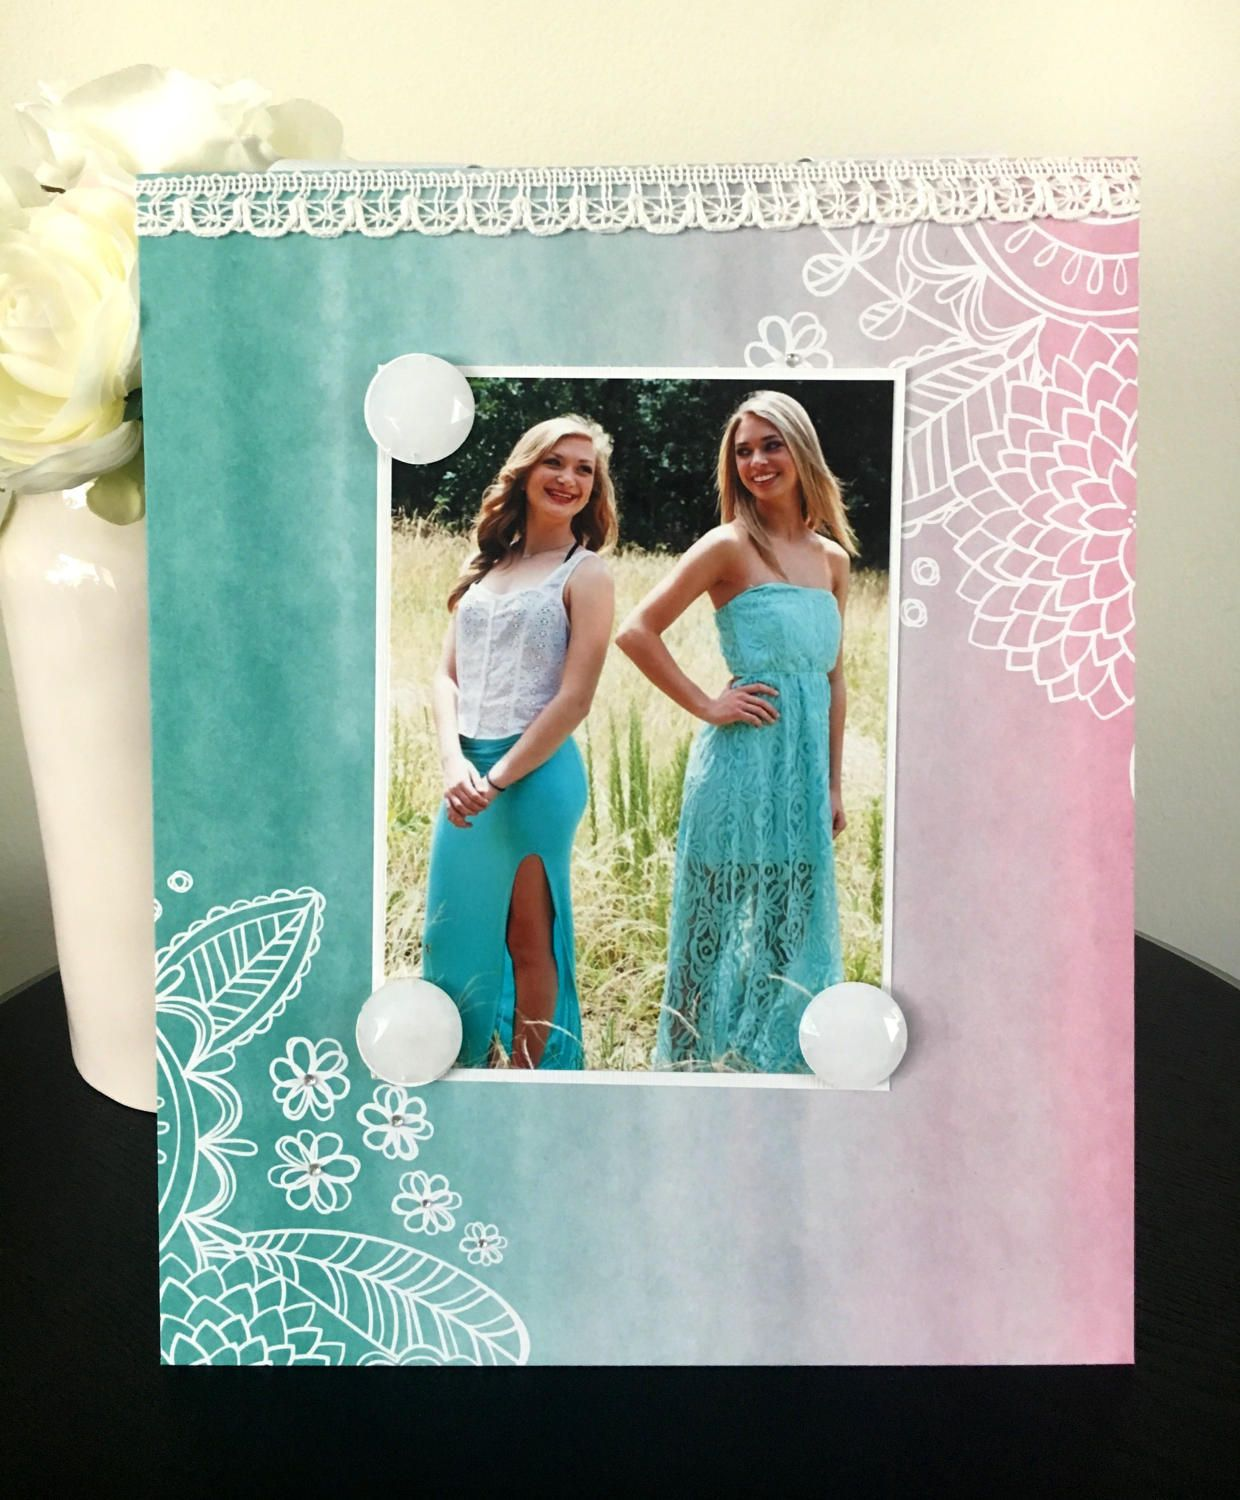 Boho Girl Turquoise V1 Magnetic Picture Frame Handmade Gift Present Home Decor By Frame A Memory Size 9 X 11 Holds 5 X 7 Photo Mint Pink With Images Magnetic Picture Frames Frame Picture Frames